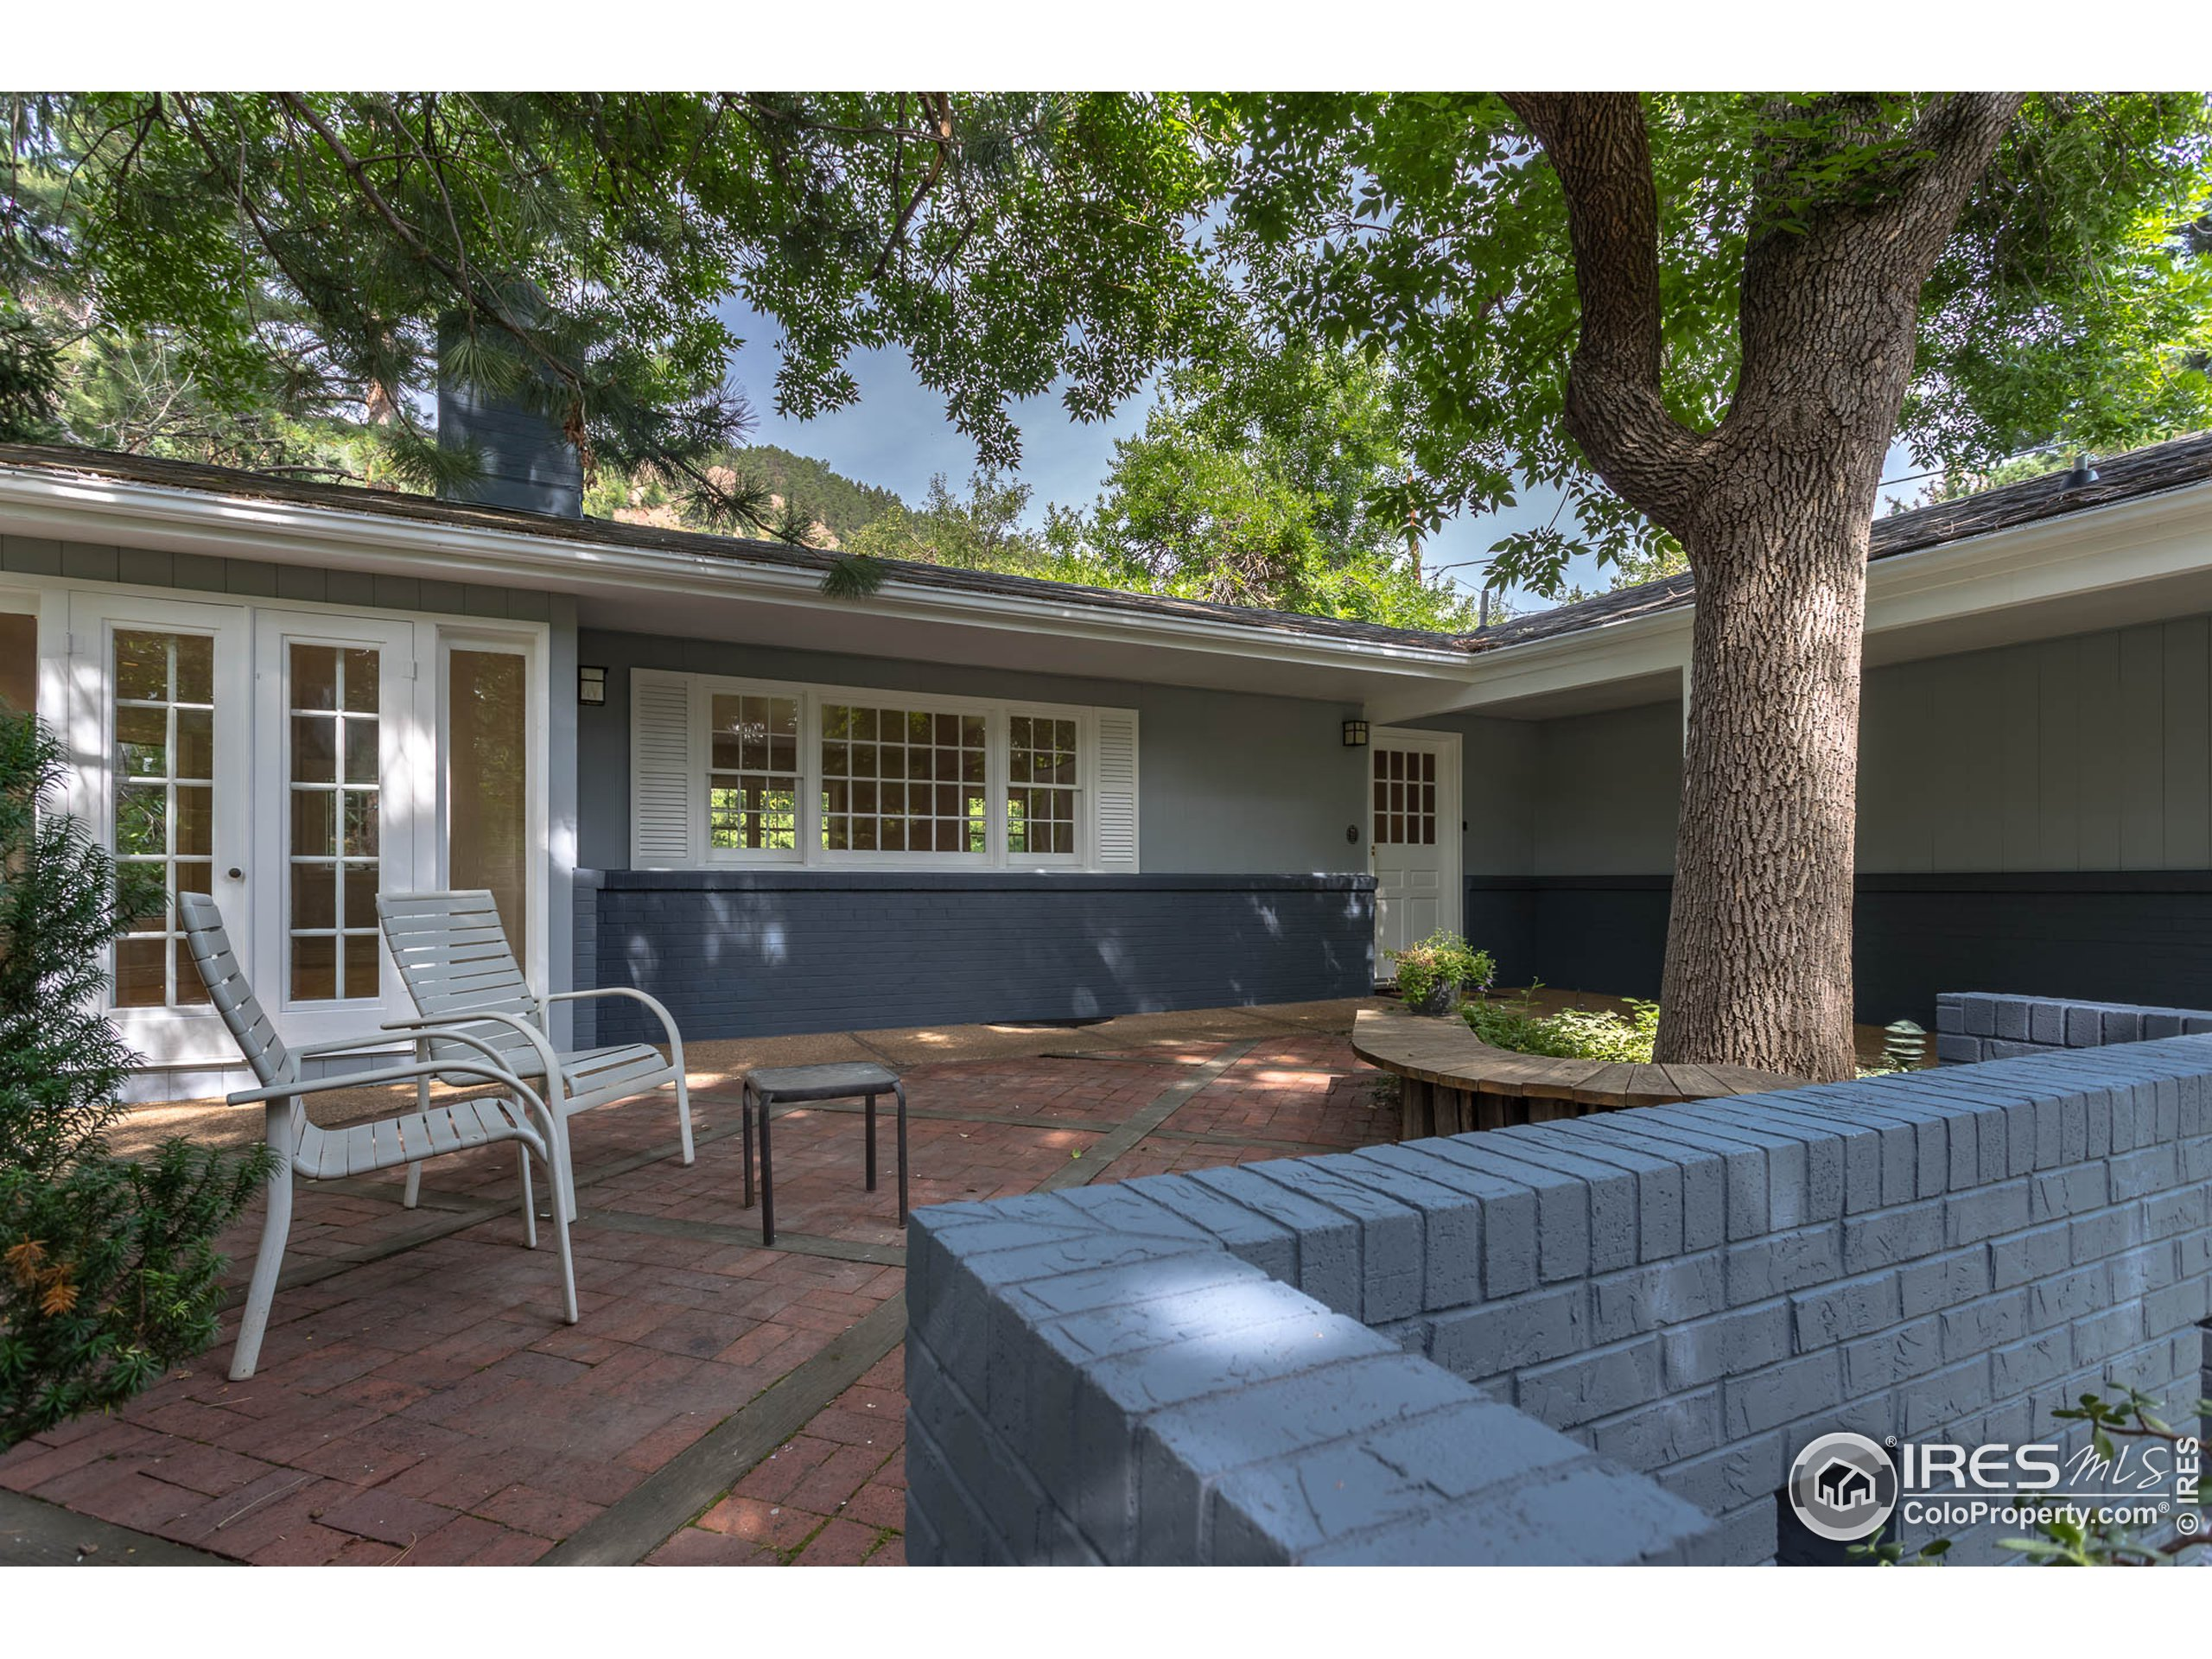 Great front porch with foothill views